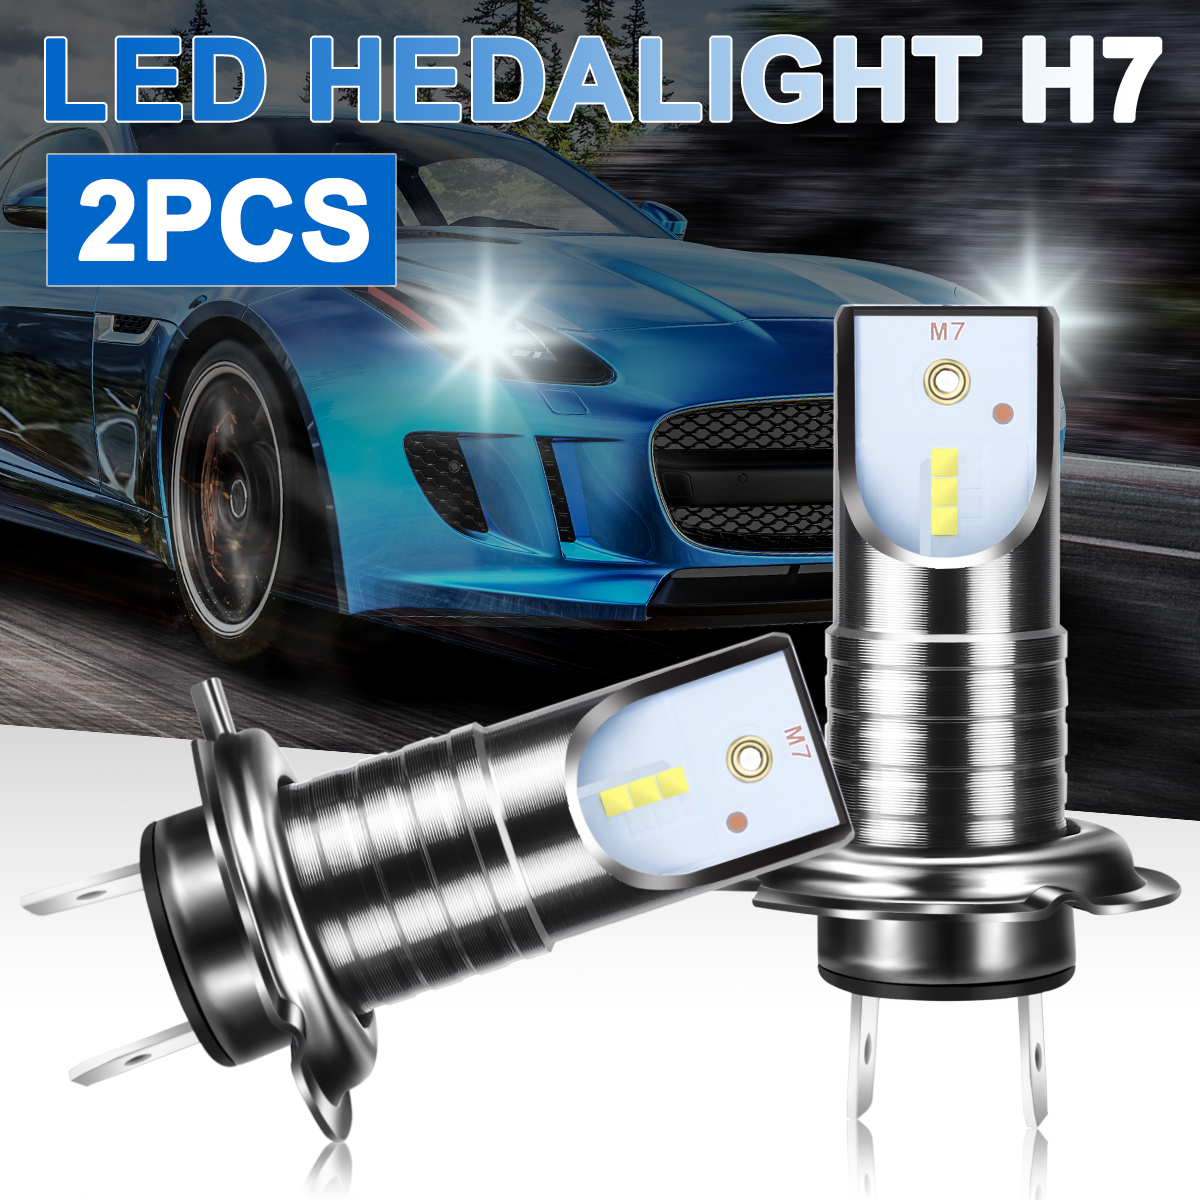 For BMW For Audi For Kia 2Pcs H7 LED Headlight 55W 13000LM 6000K LED Car Headlight Conversion Kit Canbus Error Free Bulb White image